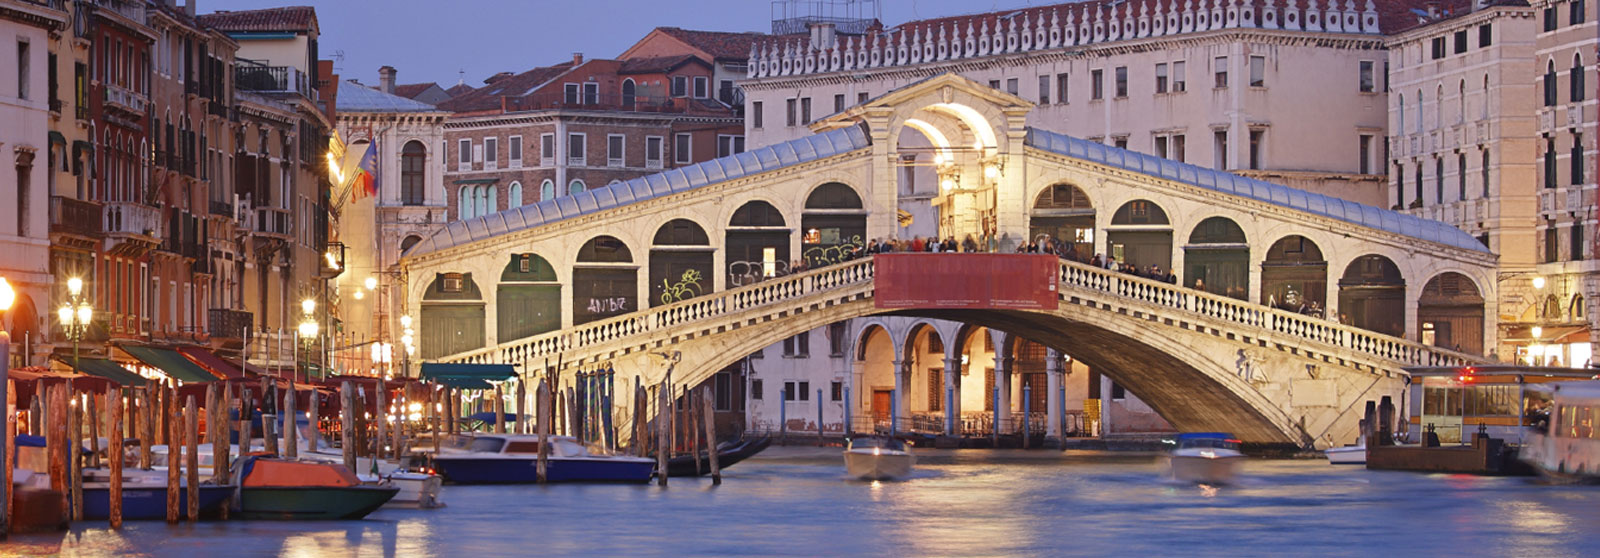 The Michelin-starred restaurants in Venice: how to choose the best one